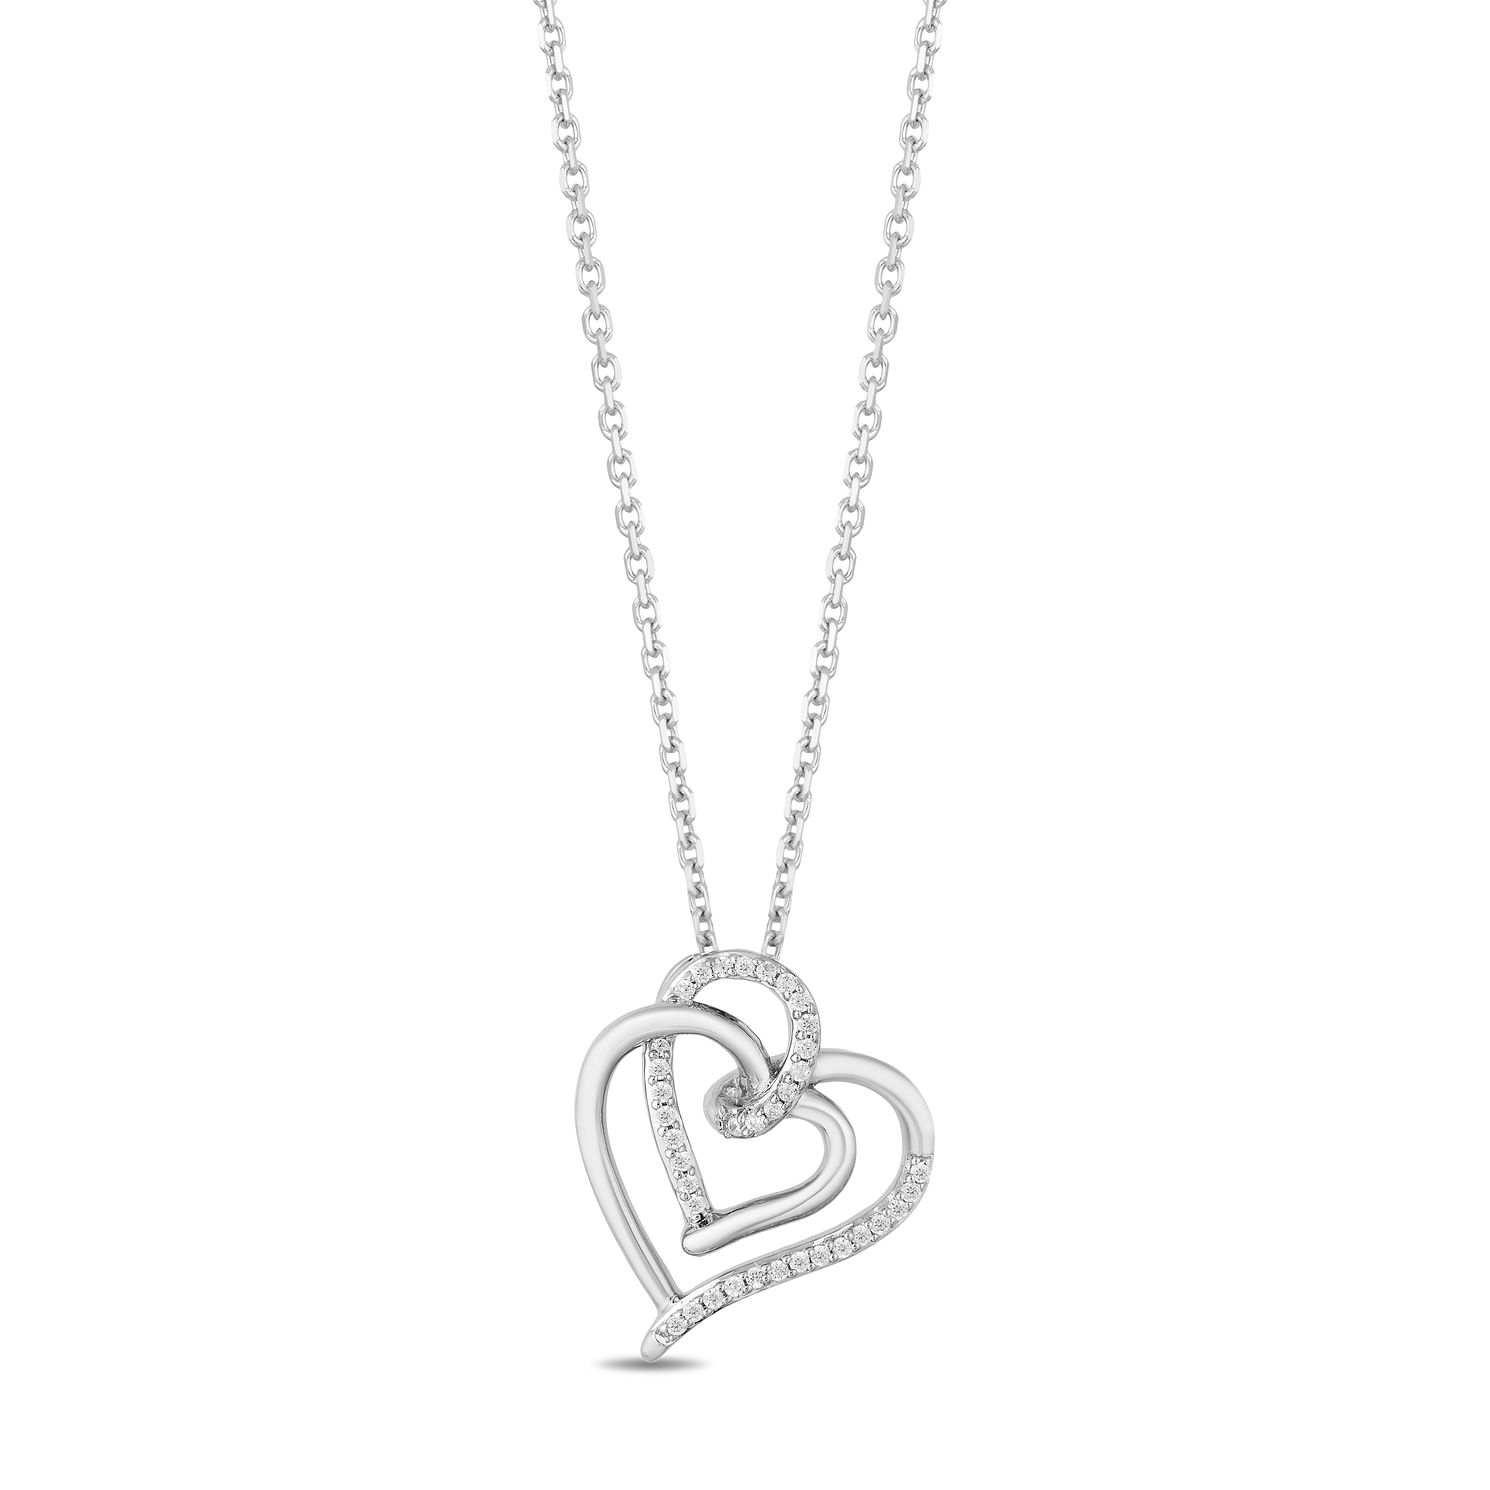 Hallmark Silver Diamond Intertwined Hearts Pendant - Product number 4821262